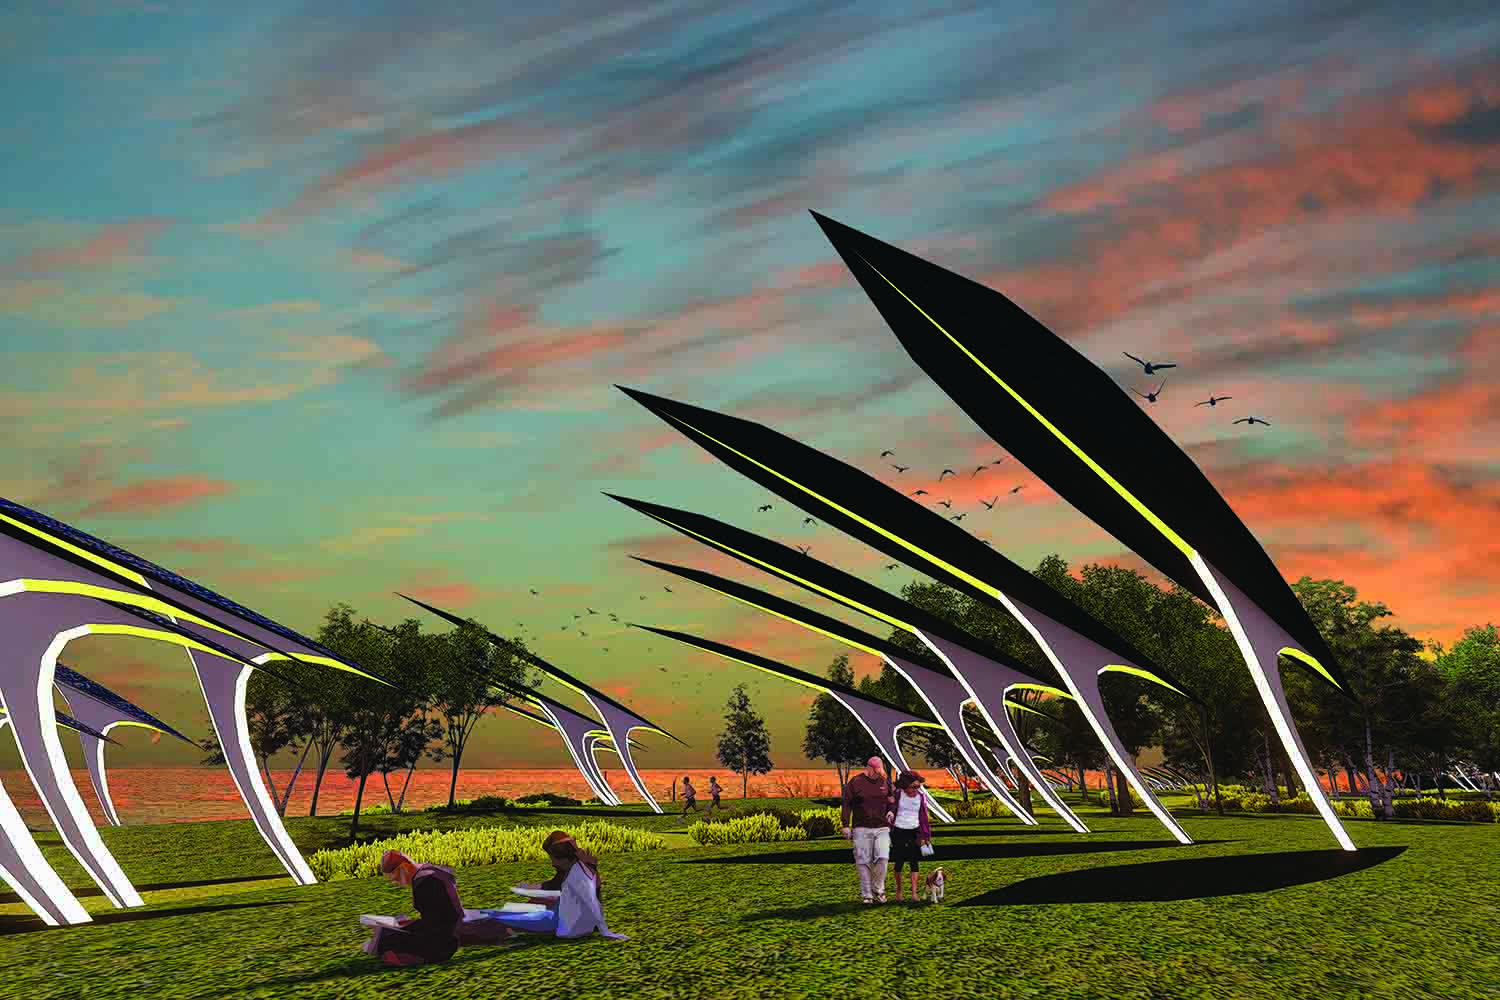 solar power, thin-film multijunction solar, piezoelectricity, public art, st kilda, melbourne, city of port phillip, australia, melbourne, LAGI 2018, land art generator initiative, renewable energy, clean energy, stealing fire